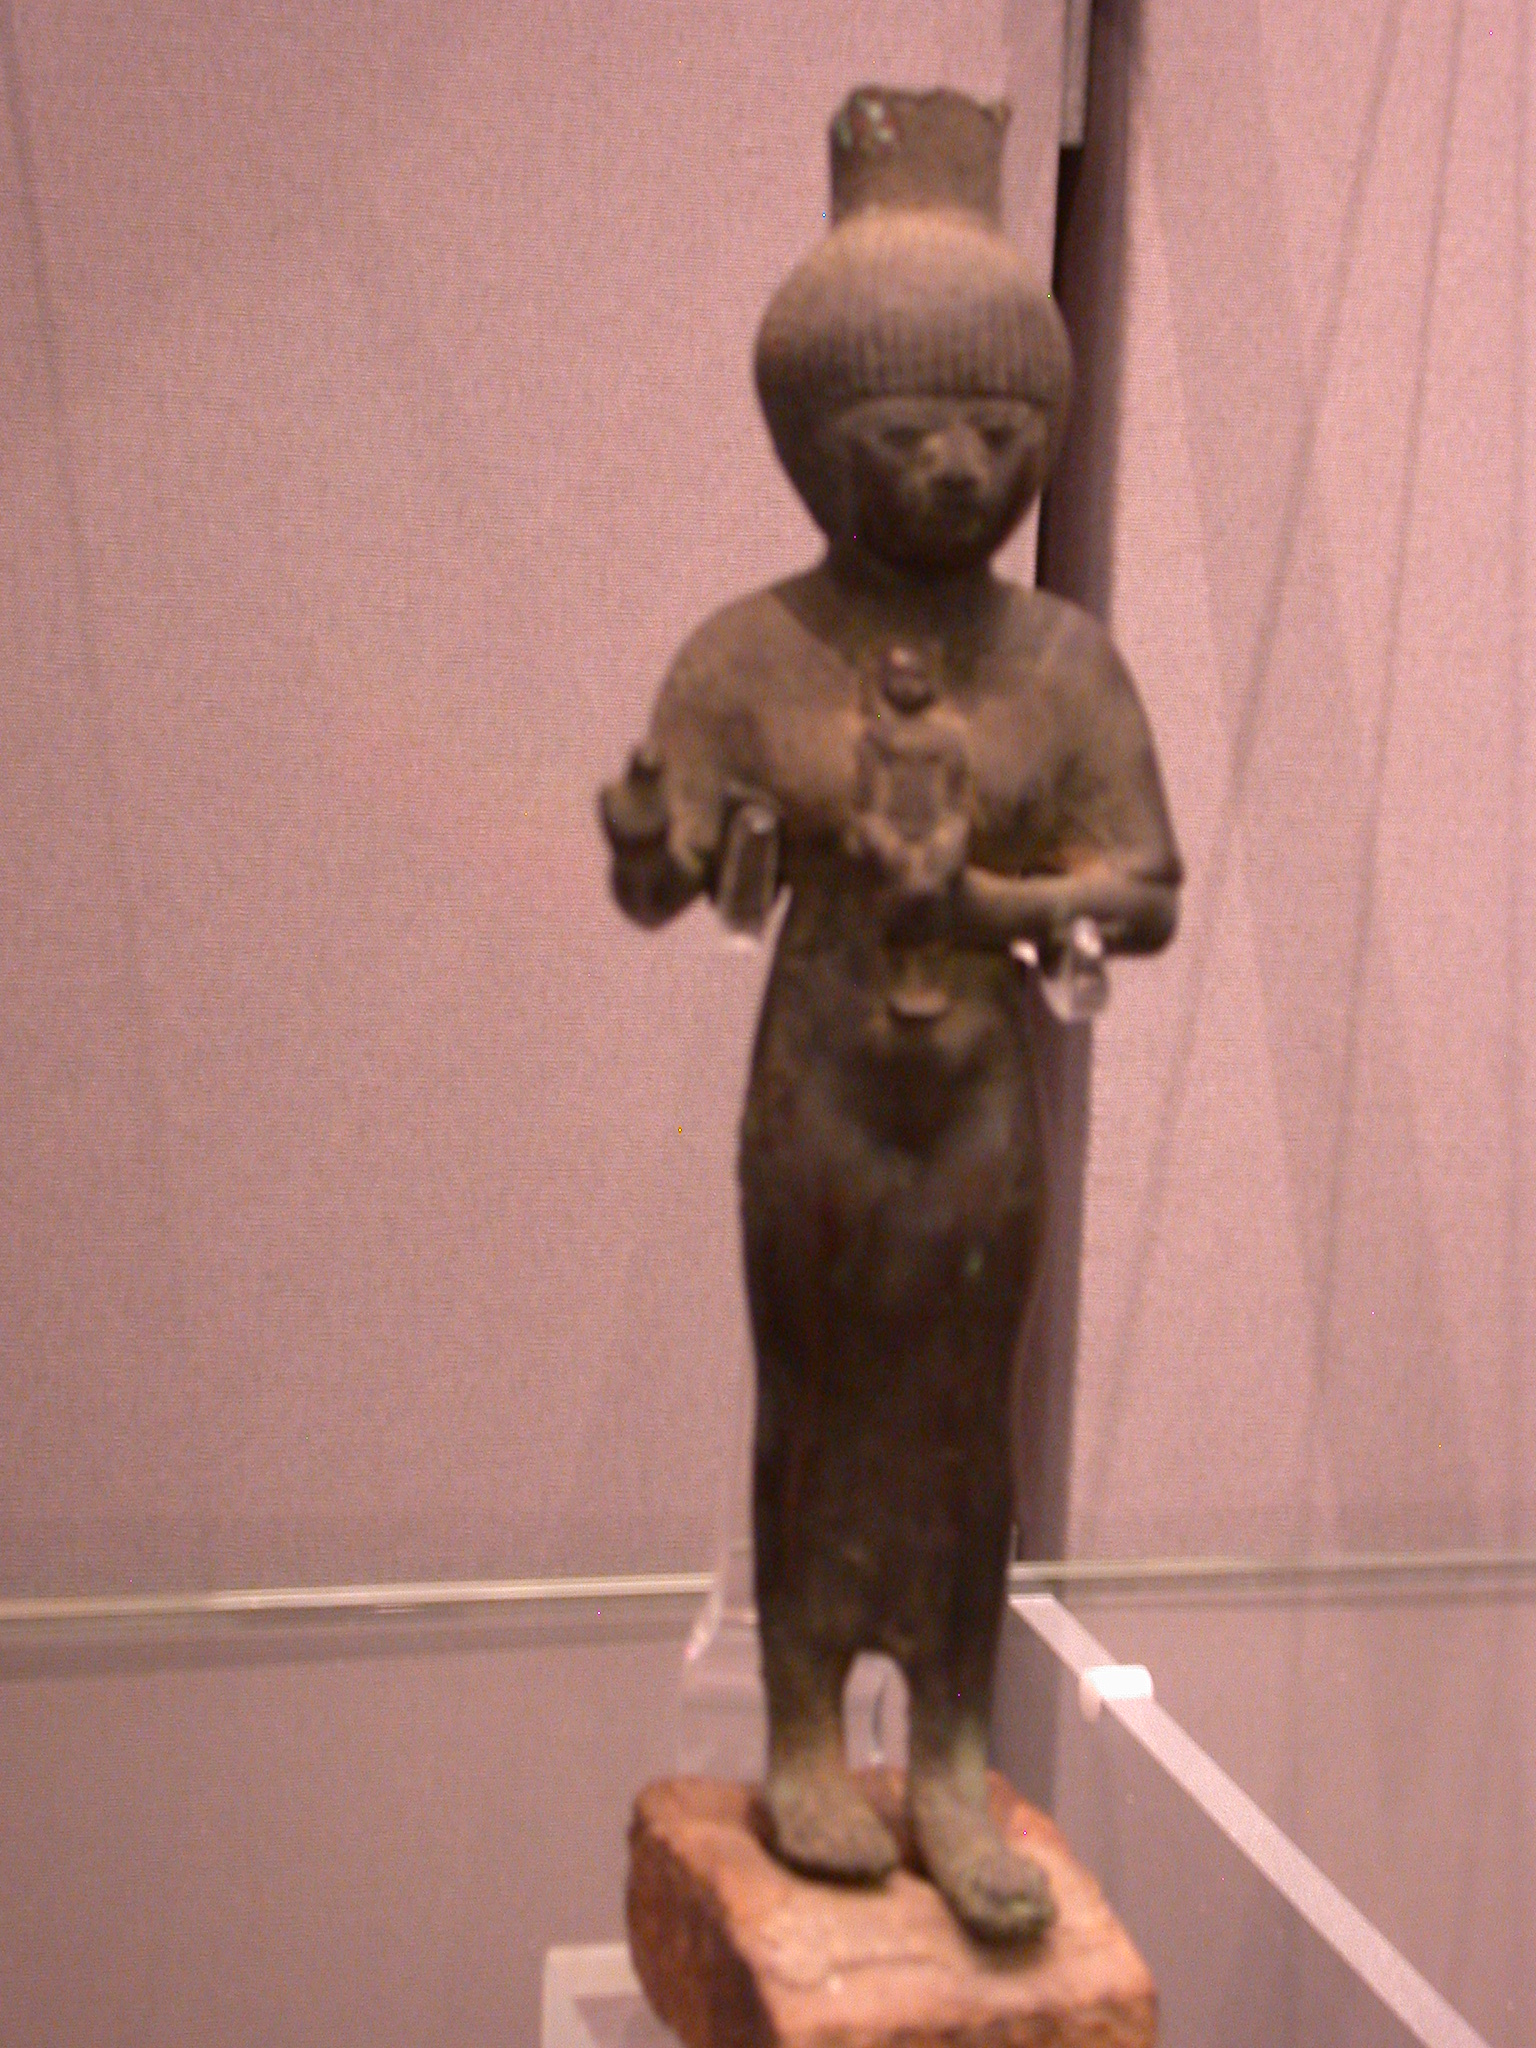 Figurine of Woman Holding Statue of Young Horus, Copper Alloy, 25th Dynasty, 746-664 BCE, Egypt, in Fitzwilliam Museum, Cambridge, England